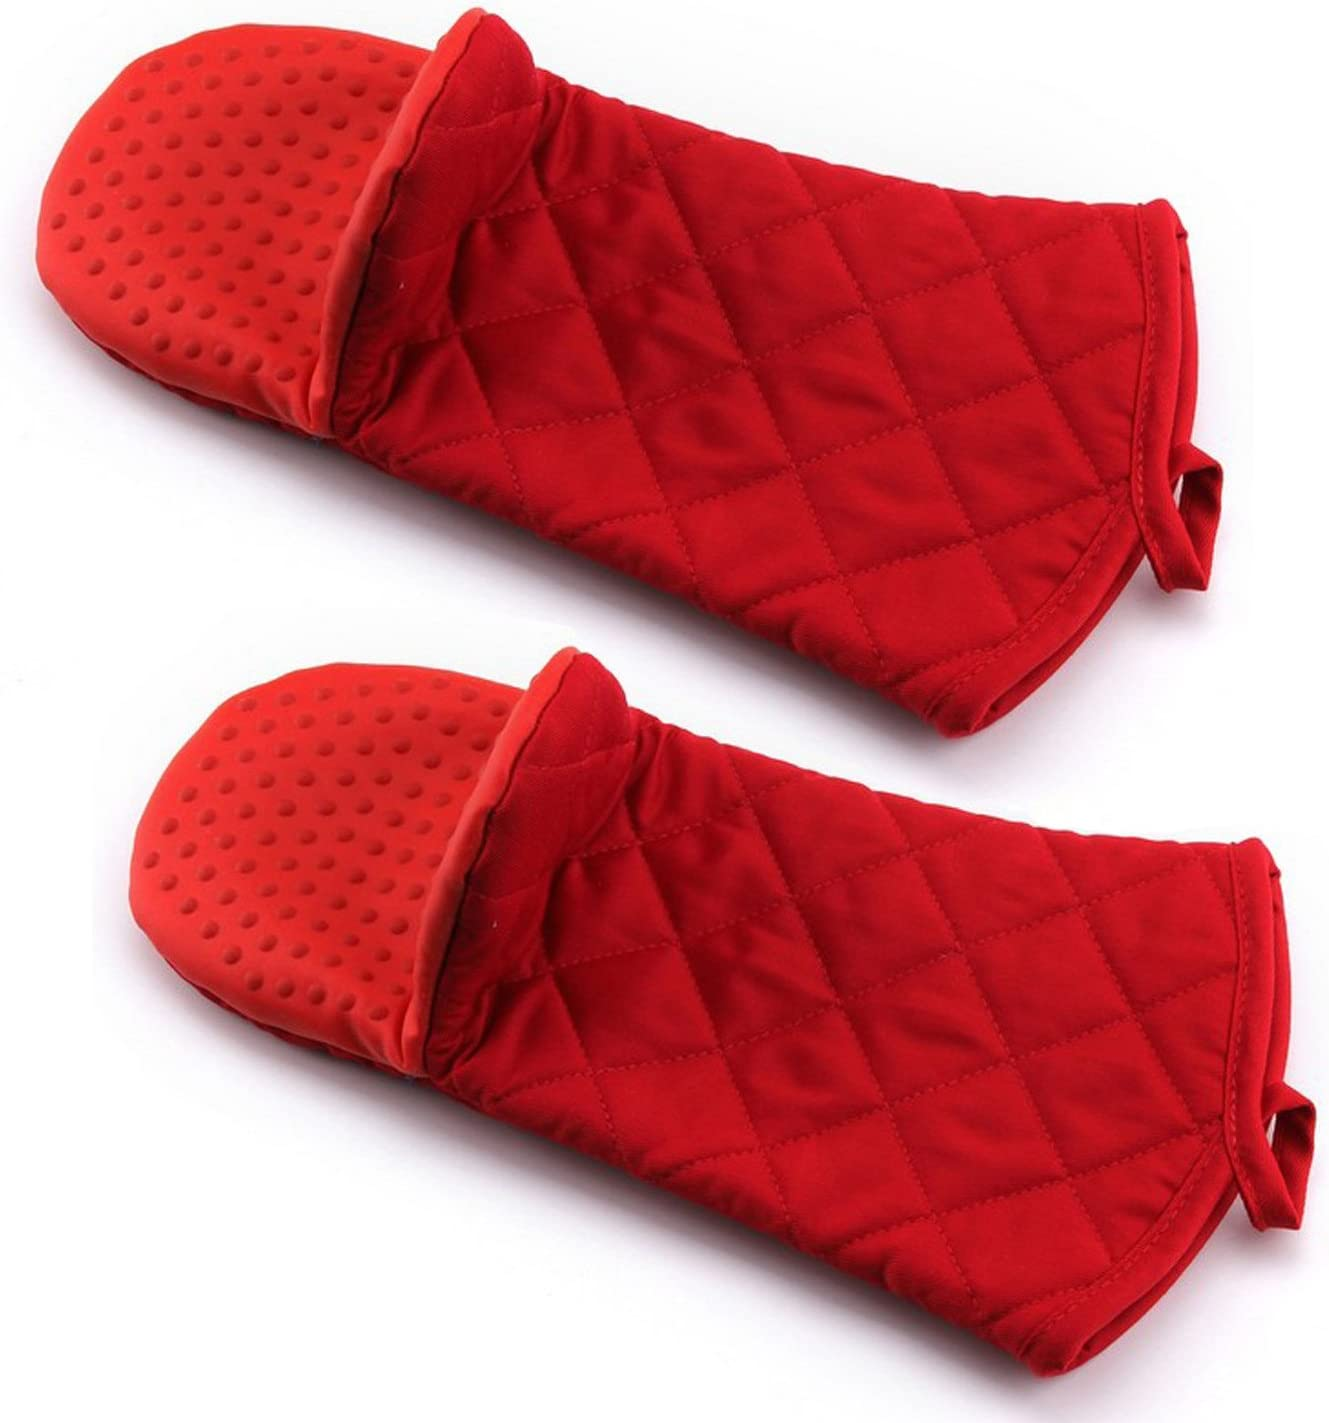 Bekith Oven Mitt with Non-Slip Silicone Grip, Heat Resistant Oven Gloves to 500° F, 2-Pack (Red)